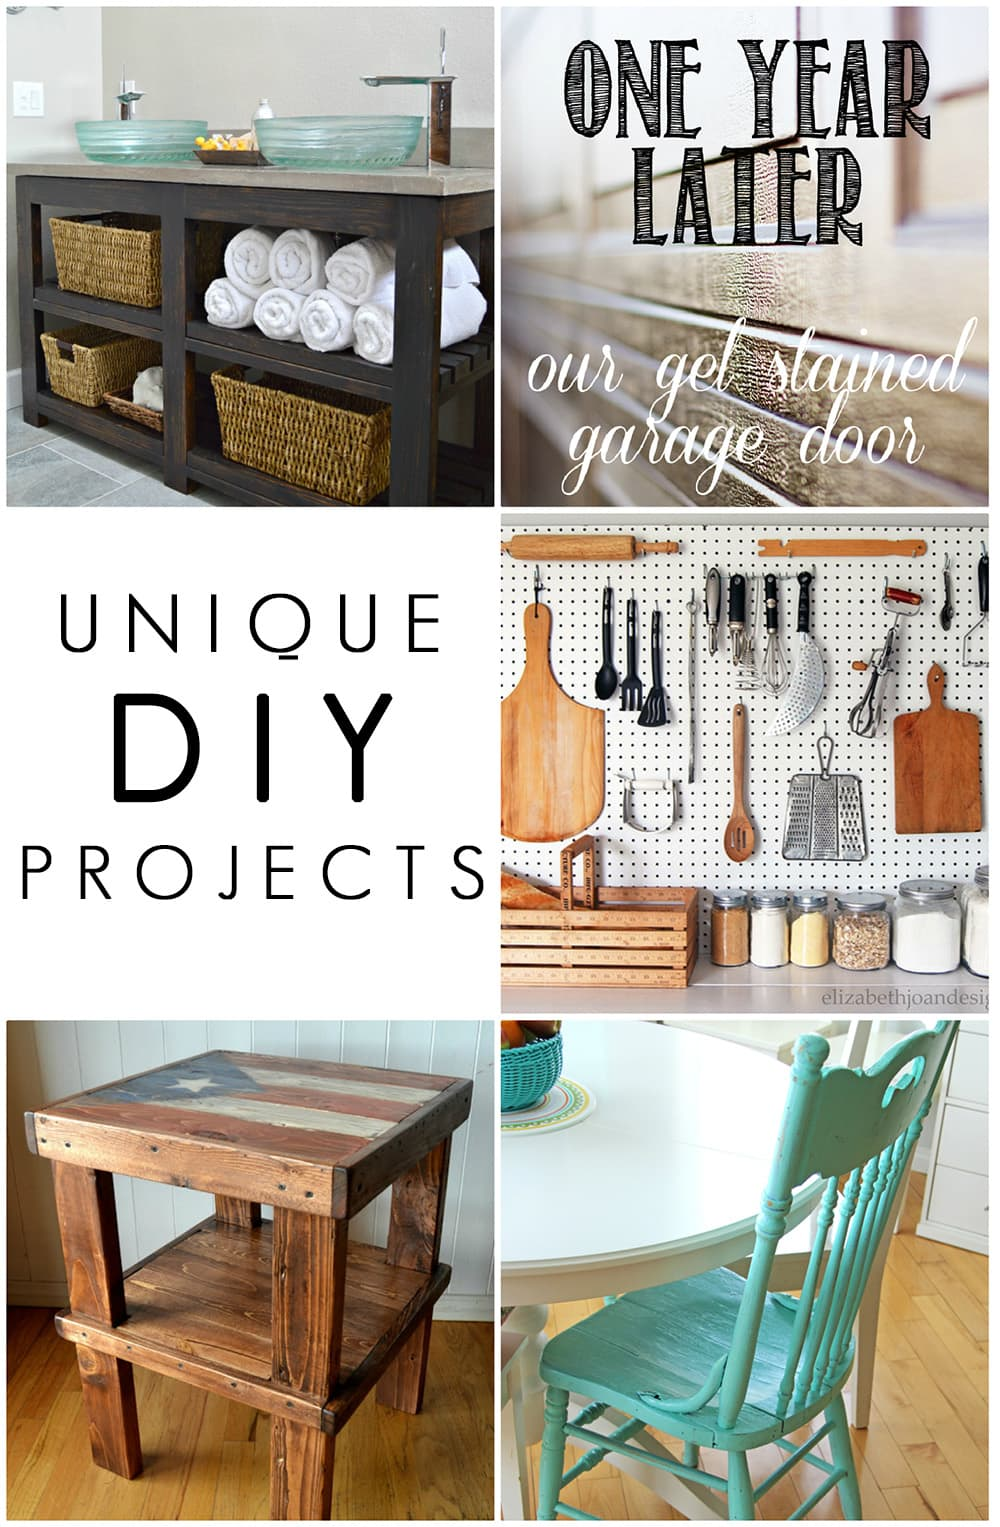 Amazing DIY creativity - I especially love that pegboard in the kitchen! Unique DIY Projects - maisondepax.com